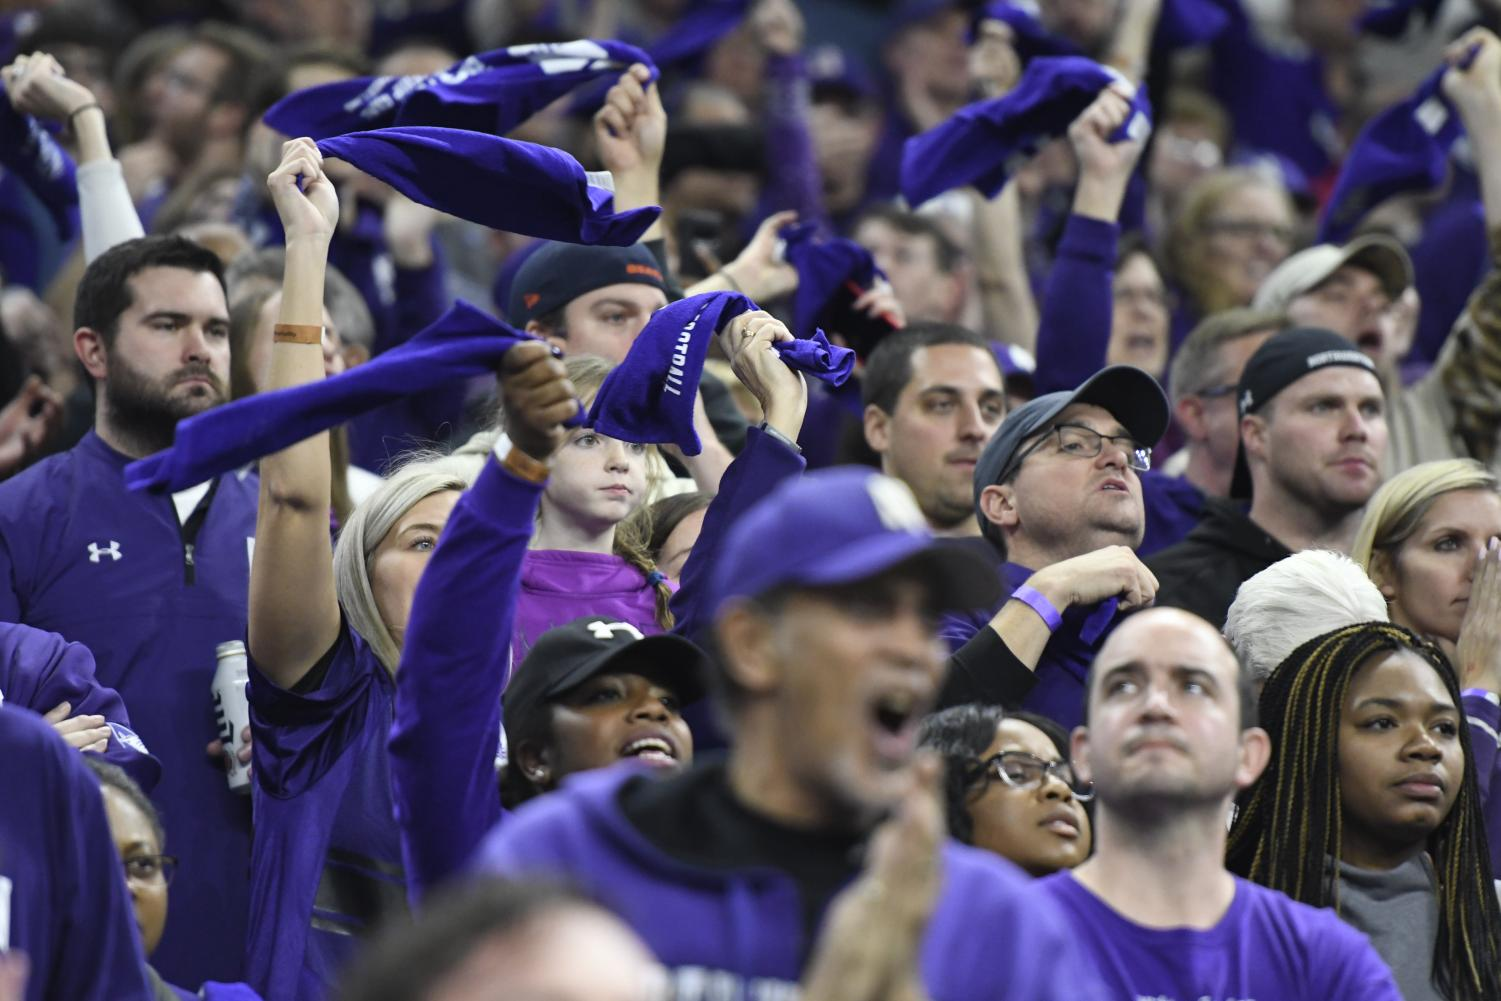 Purple-clad fans cheer on the Wildcats during Saturday's Big Ten Championship game in Indianapolis.